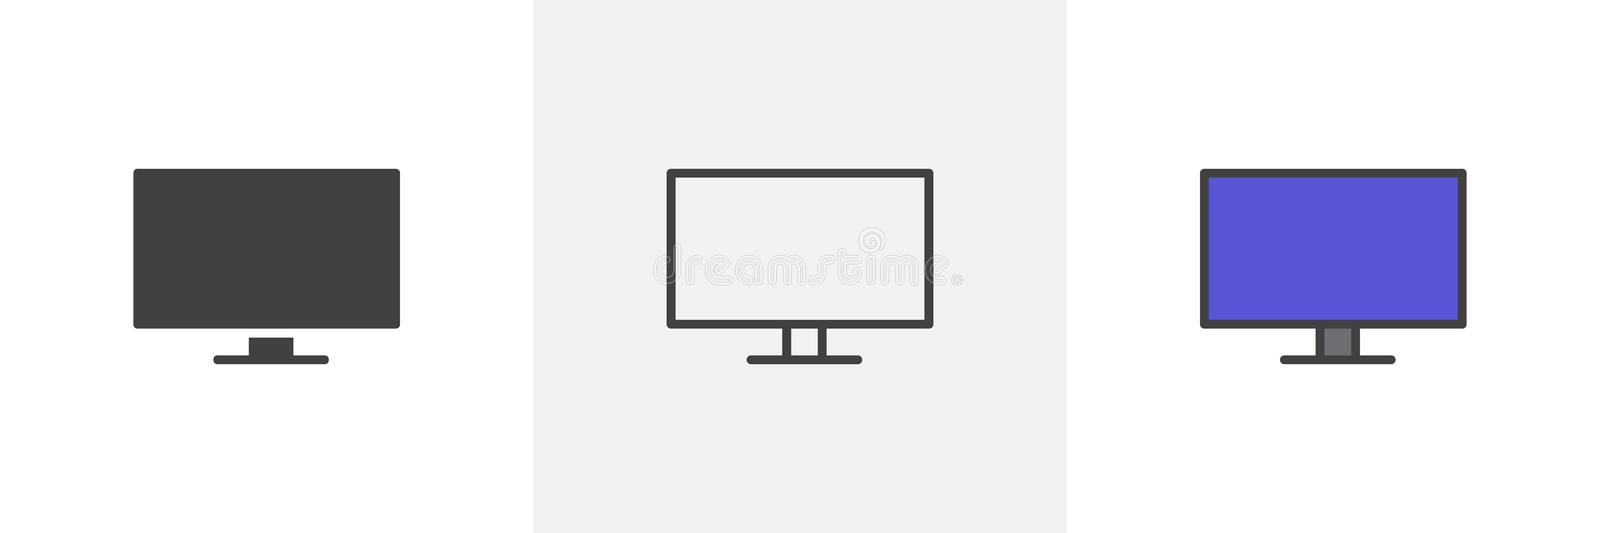 Blank Screen TV icon. Line, glyph and filled outline colorful version, Wide monitor display outline and filled vector sign. Symbol, logo illustration stock illustration